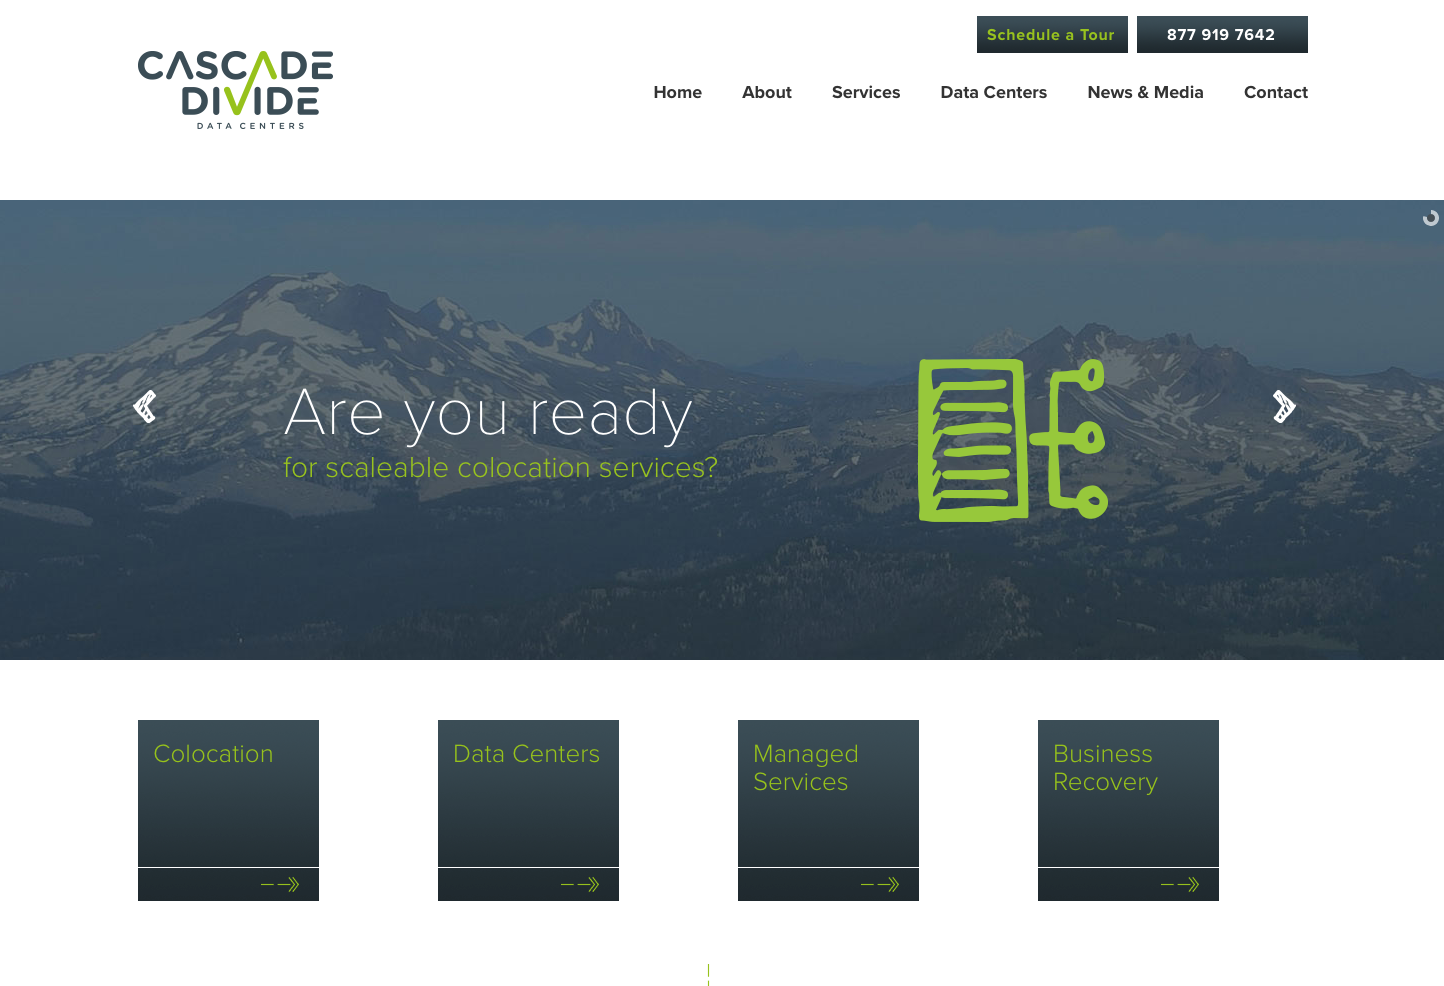 Cascade Divide Data Centers